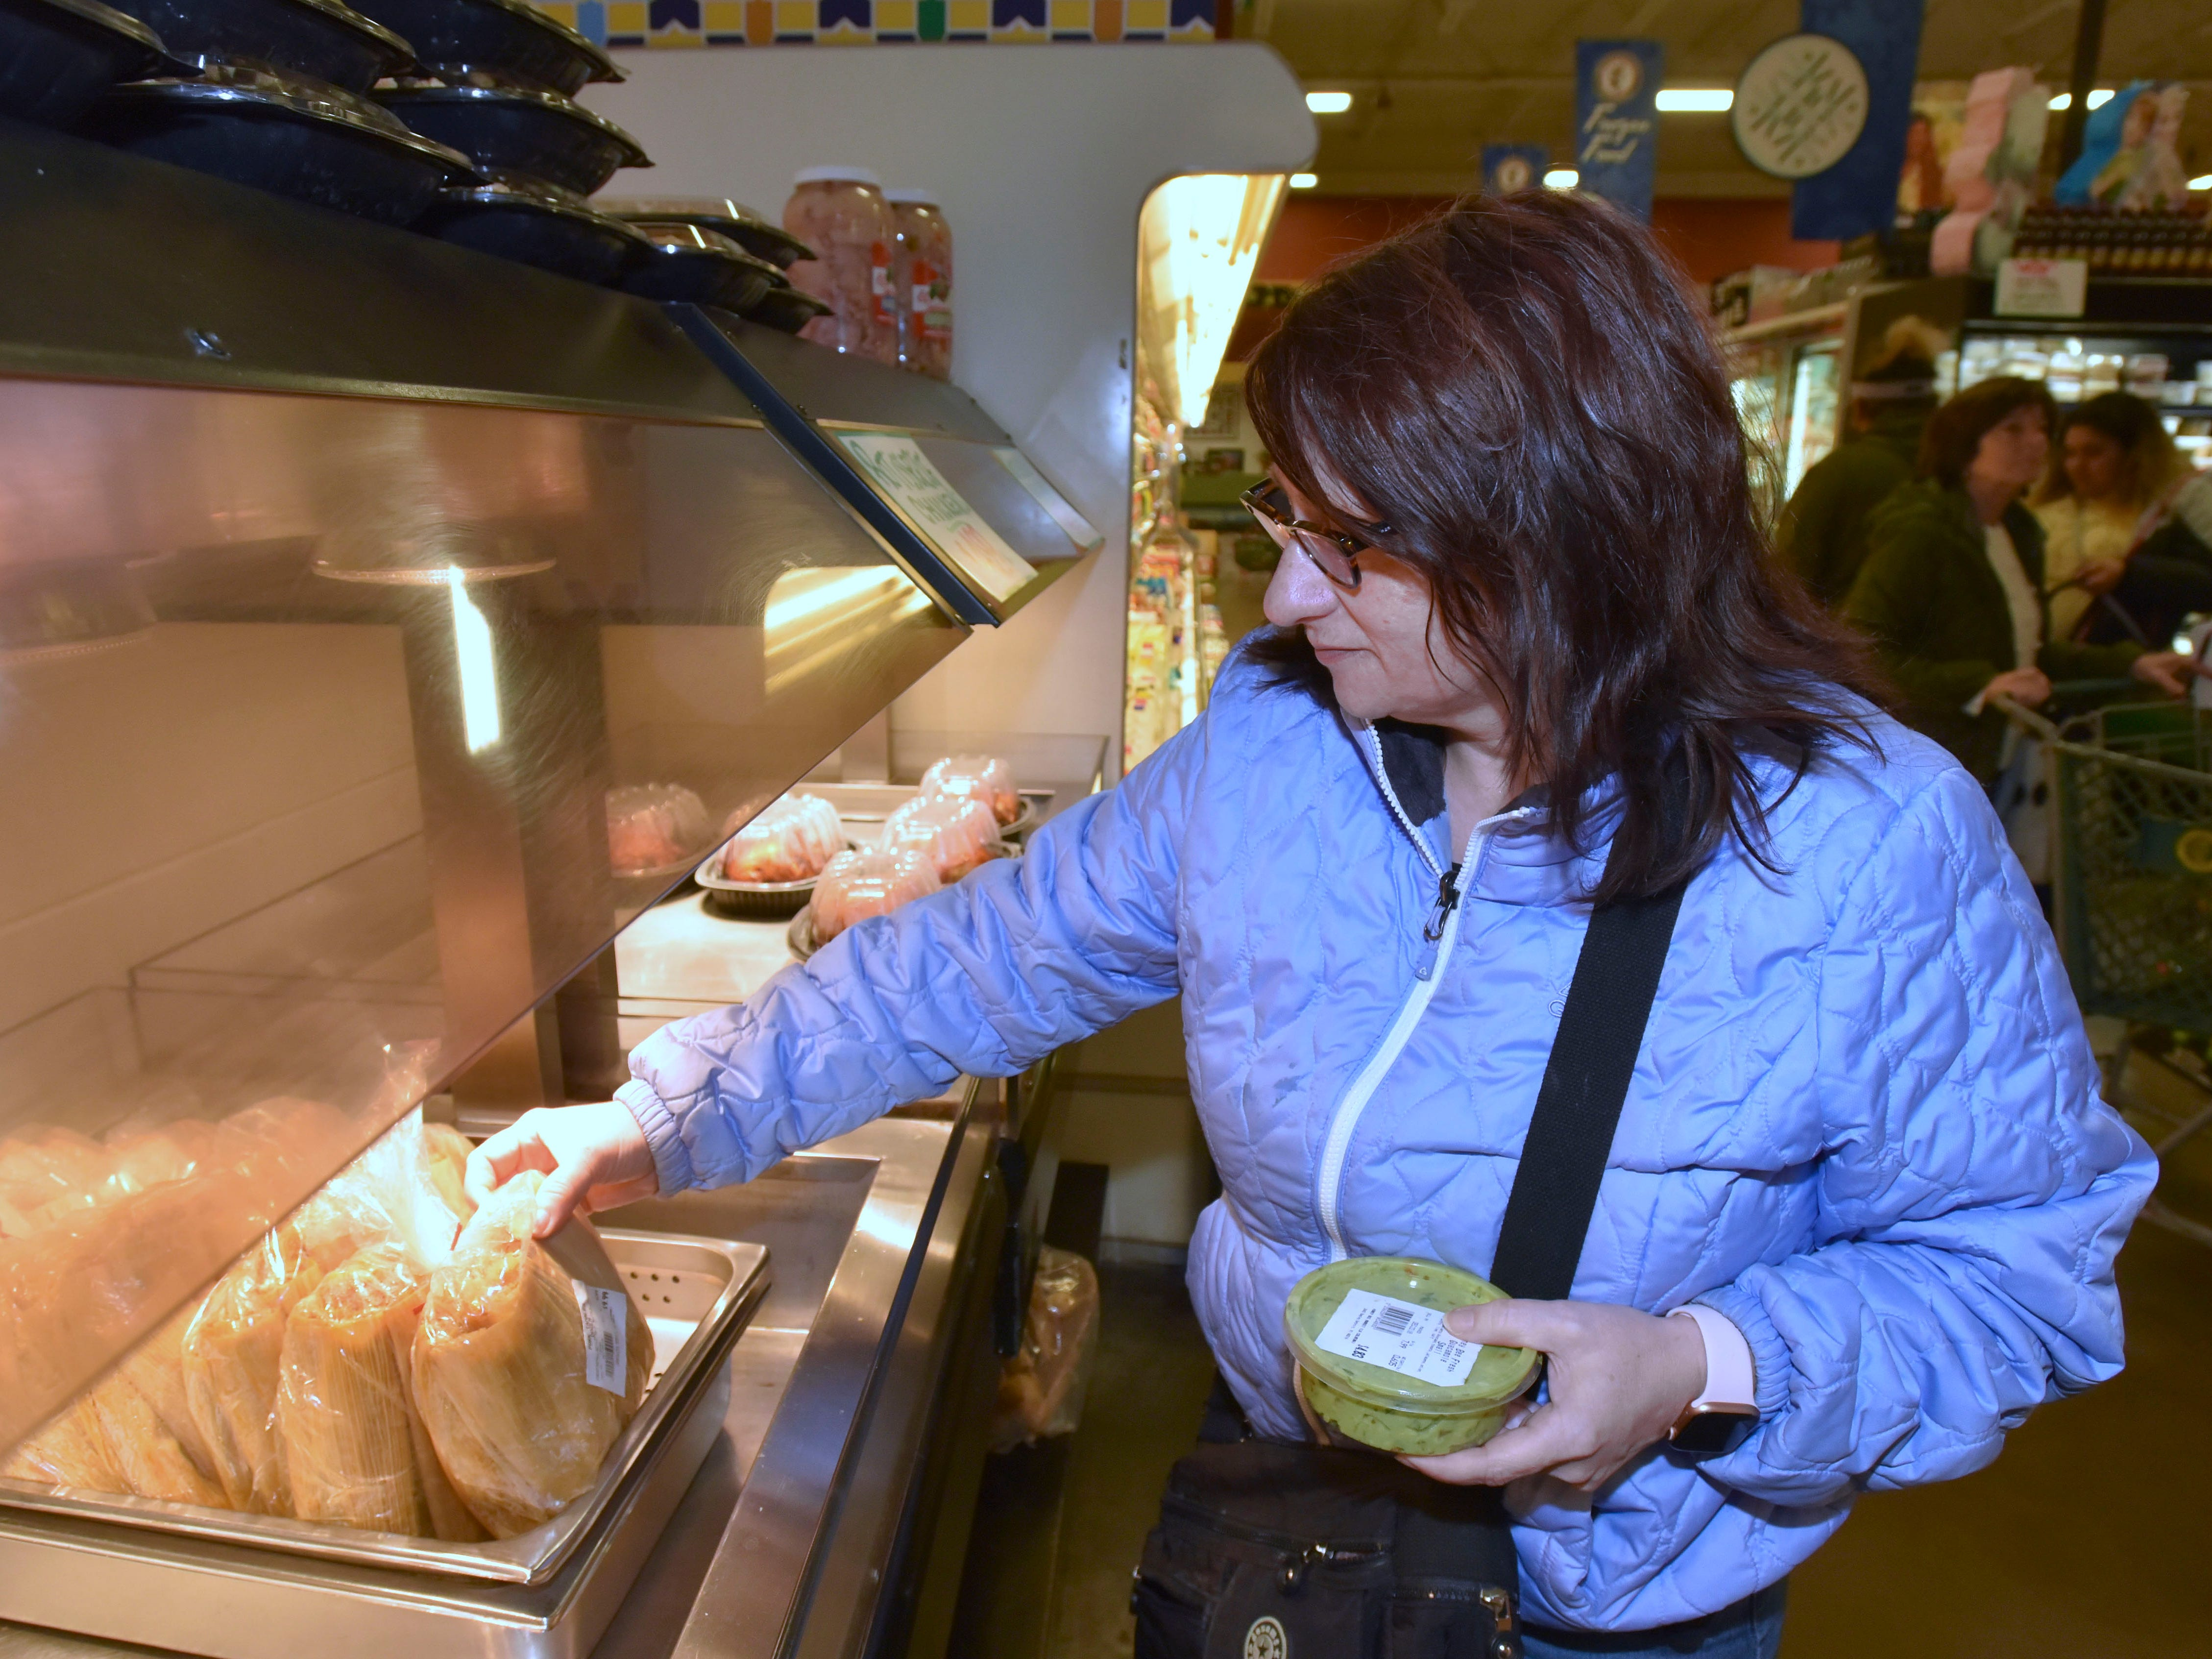 Phyllis Walter, of St. Clair Shores, buys a dozen fresh tamales from the self-serve warming case.